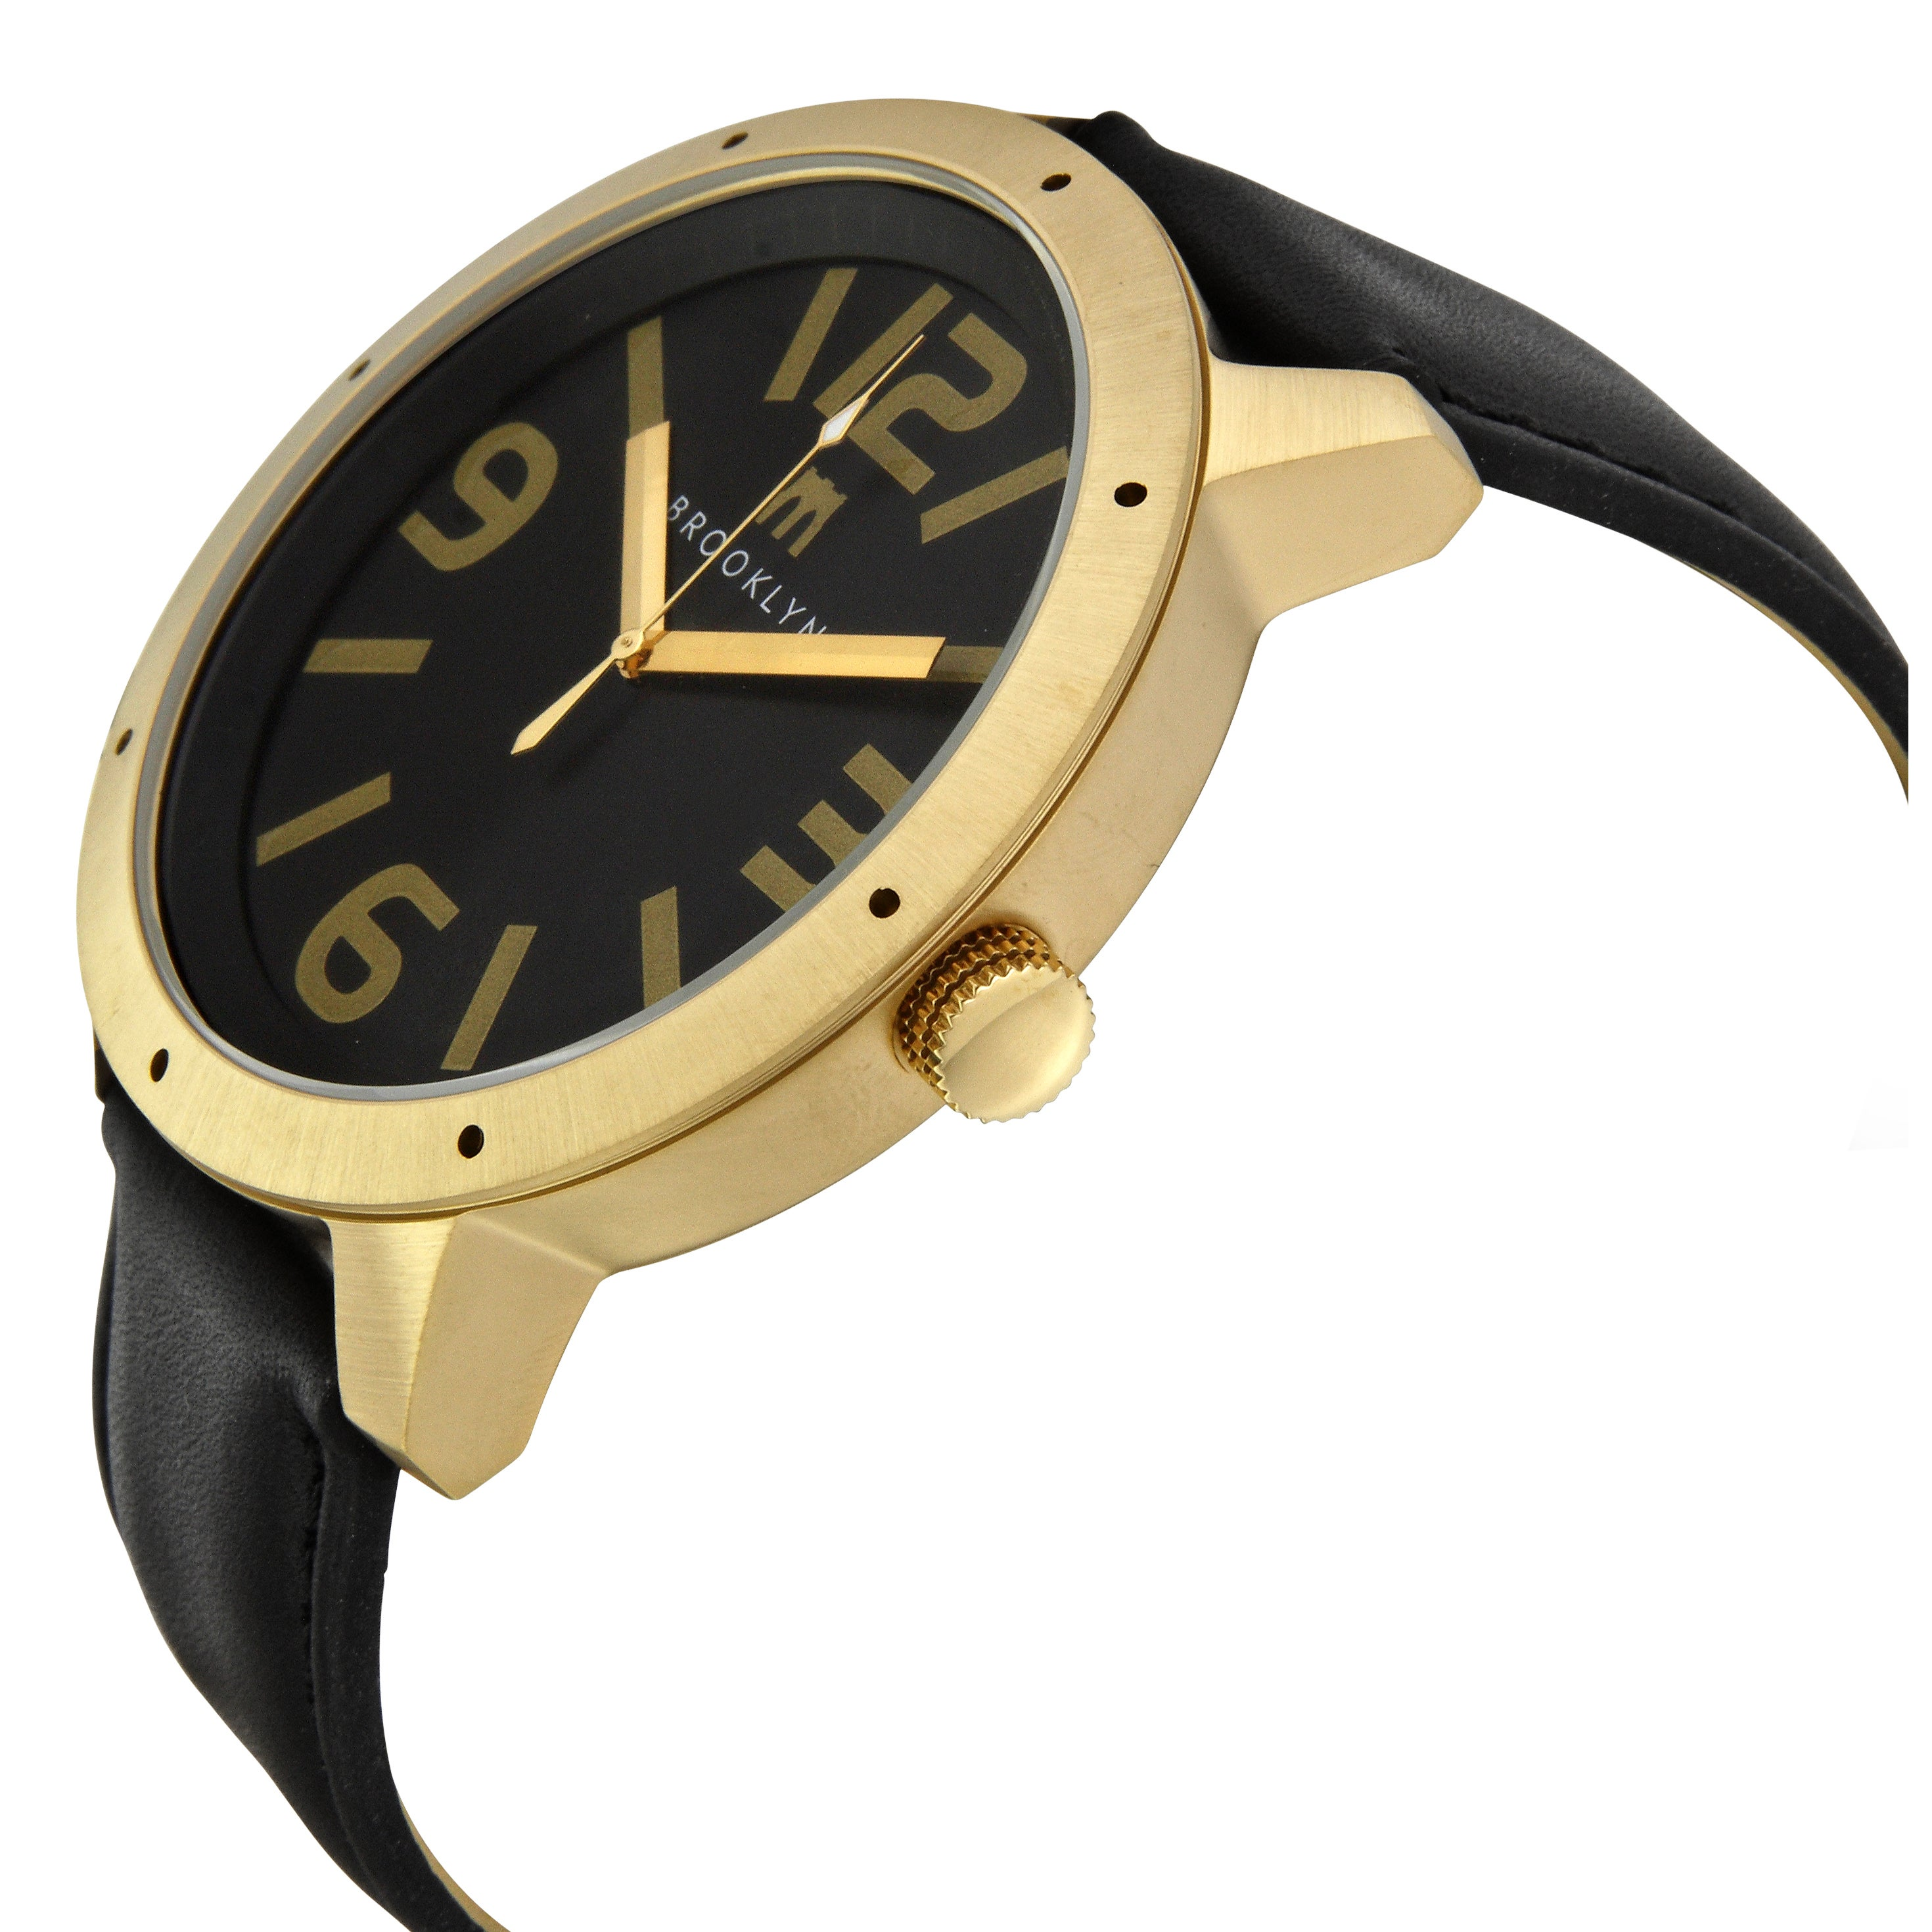 De Kalb Men's Goldtone Steel Black Dial Watch with Leather Strap - Free Shipping Today - Overstock.com - 12796896